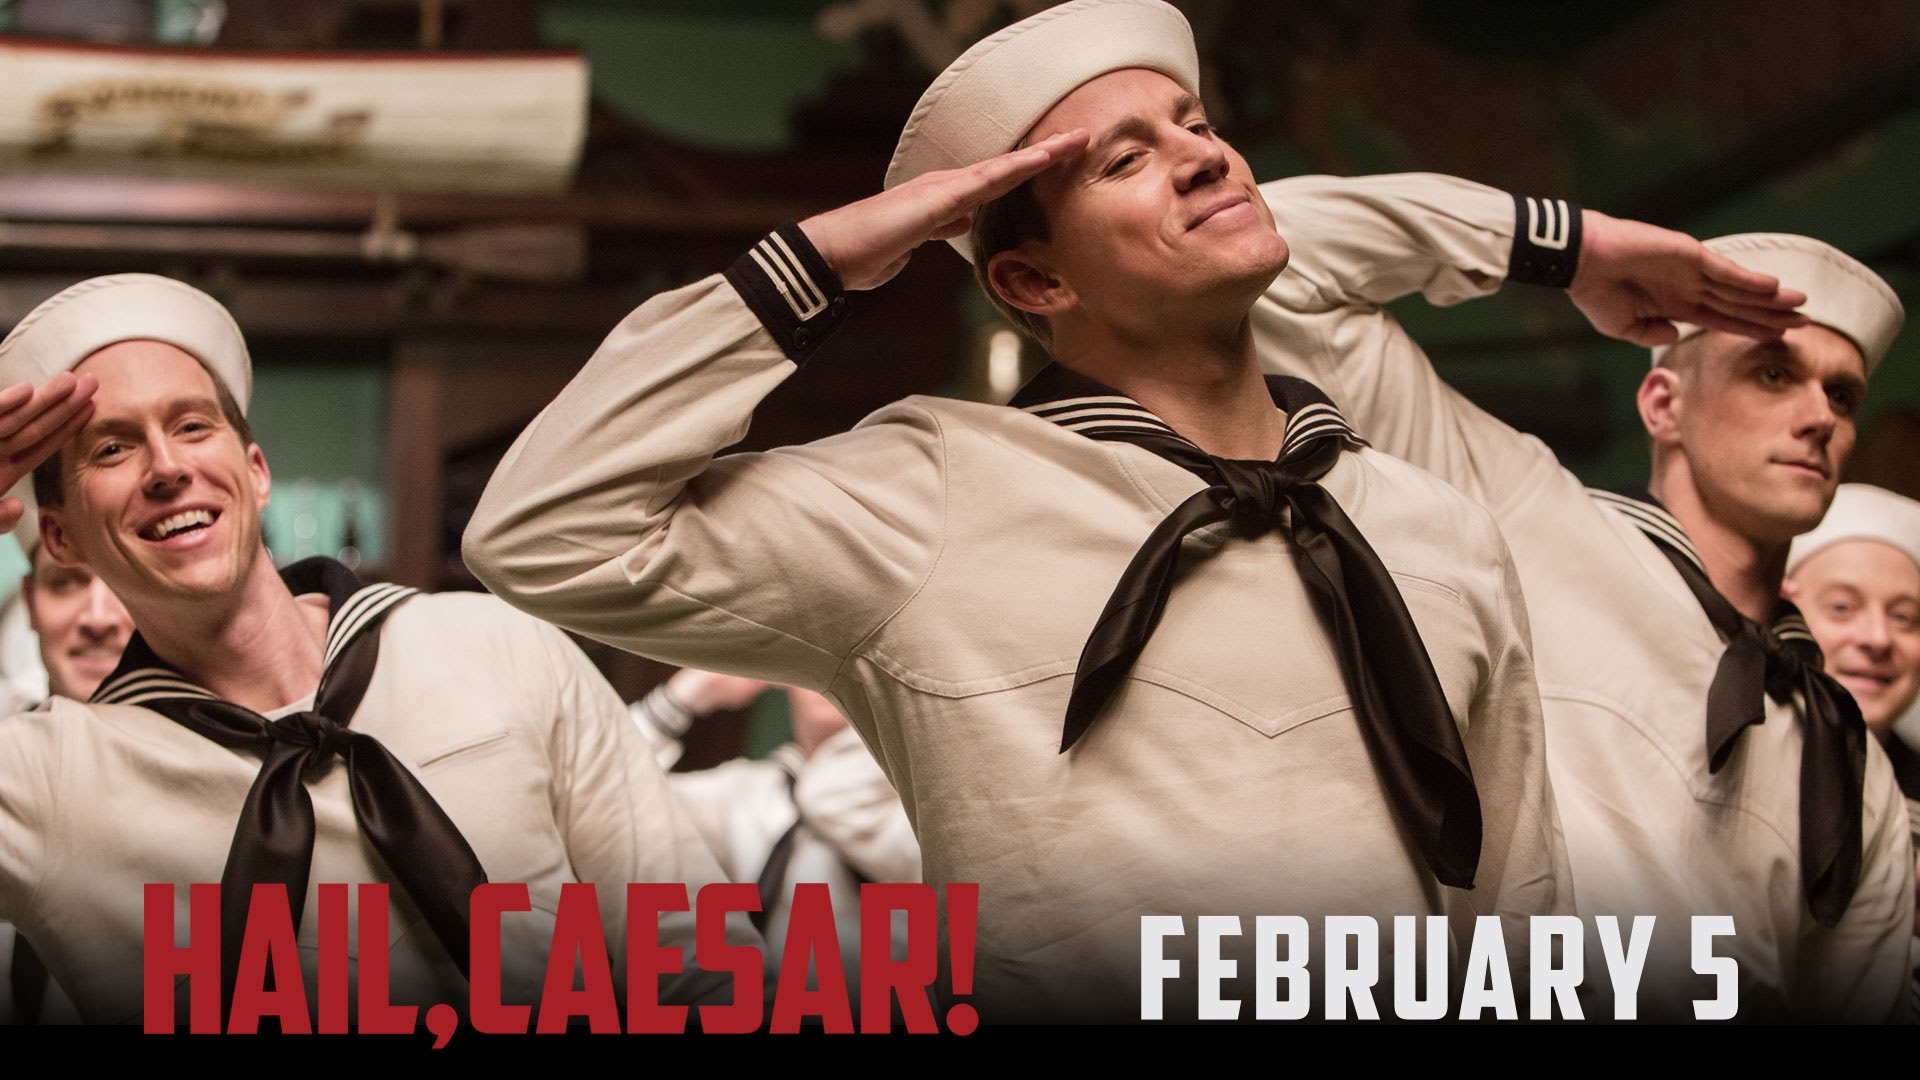 Hail, Caesar! – In Theaters February 5 (TV Spot 8) (HD)